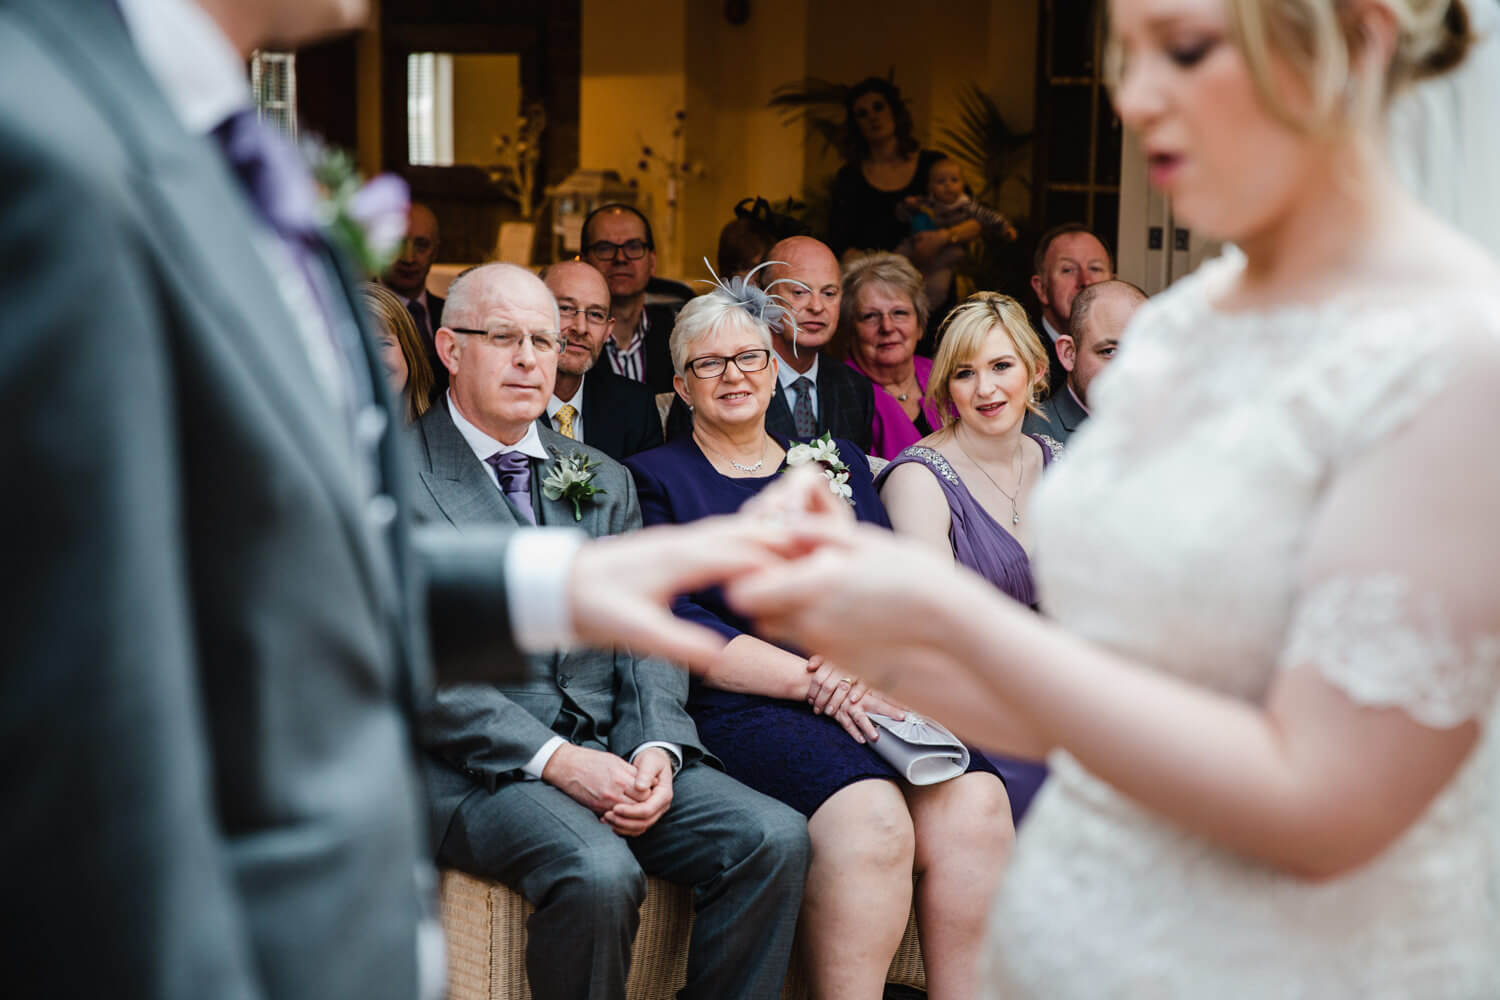 Mother of Bride smiling while newlyweds exchange rings at Mitton Hall